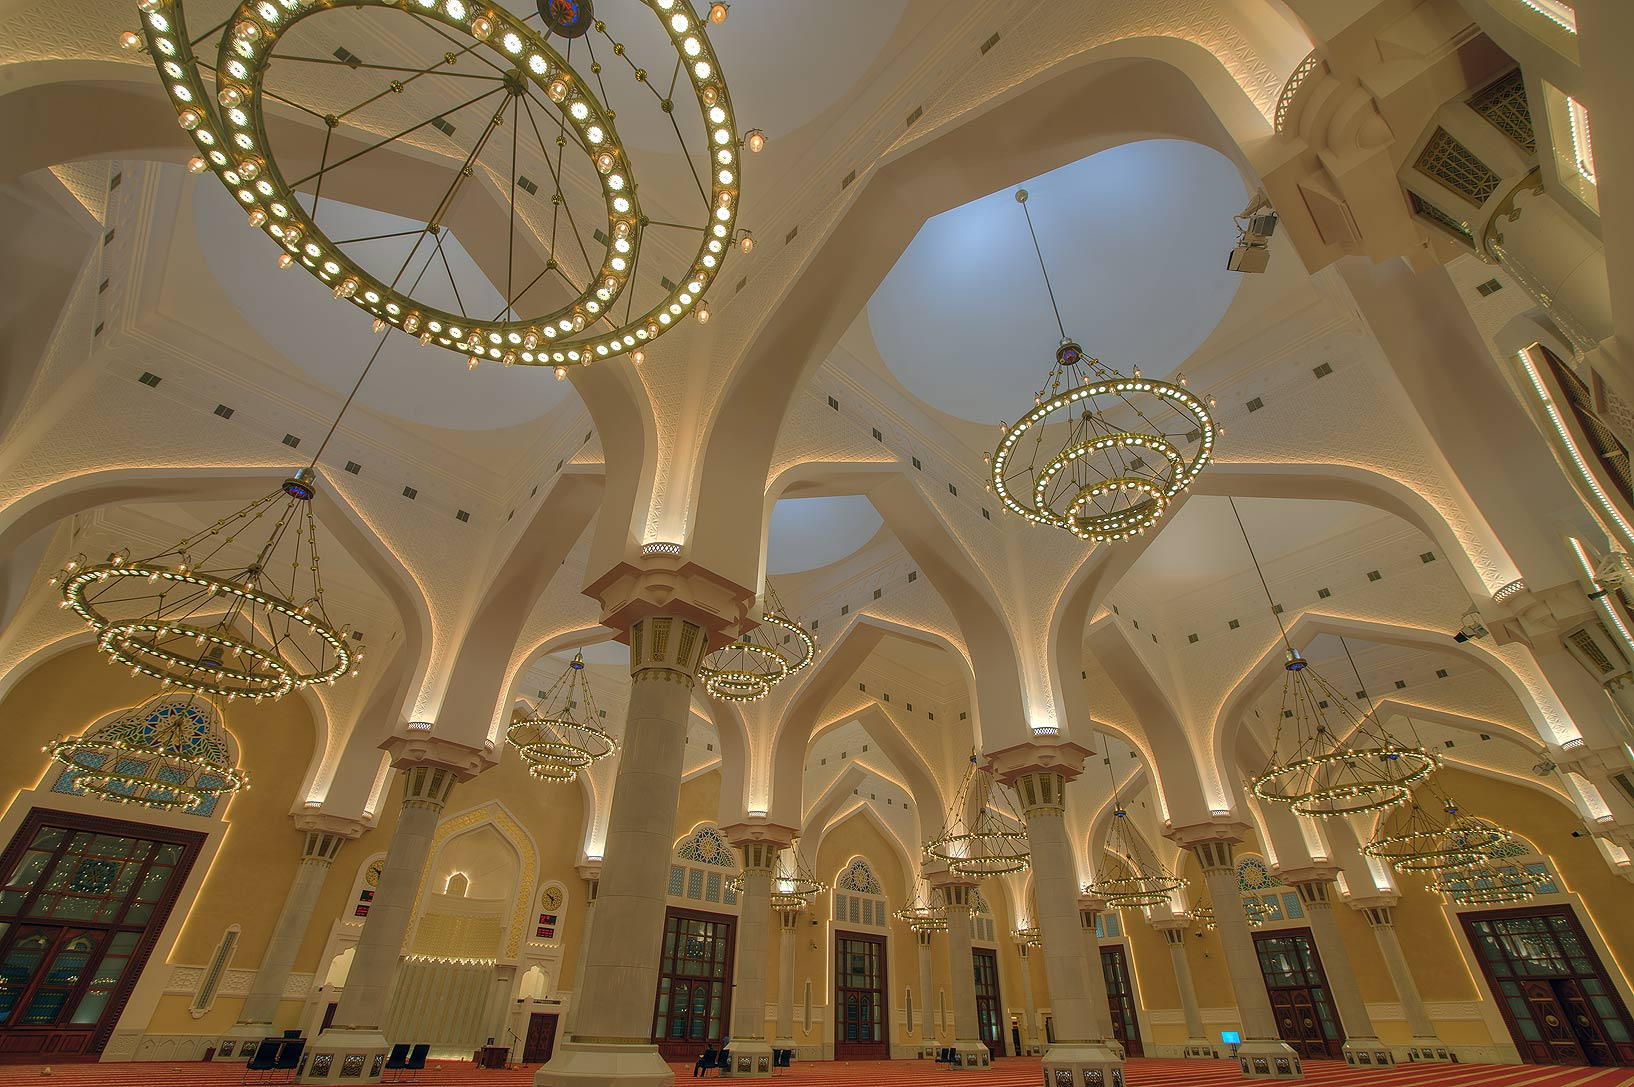 Prayer hall (musallah) of State Mosque (Sheikh...Ibn Abdul Wahhab Mosque). Doha, Qatar